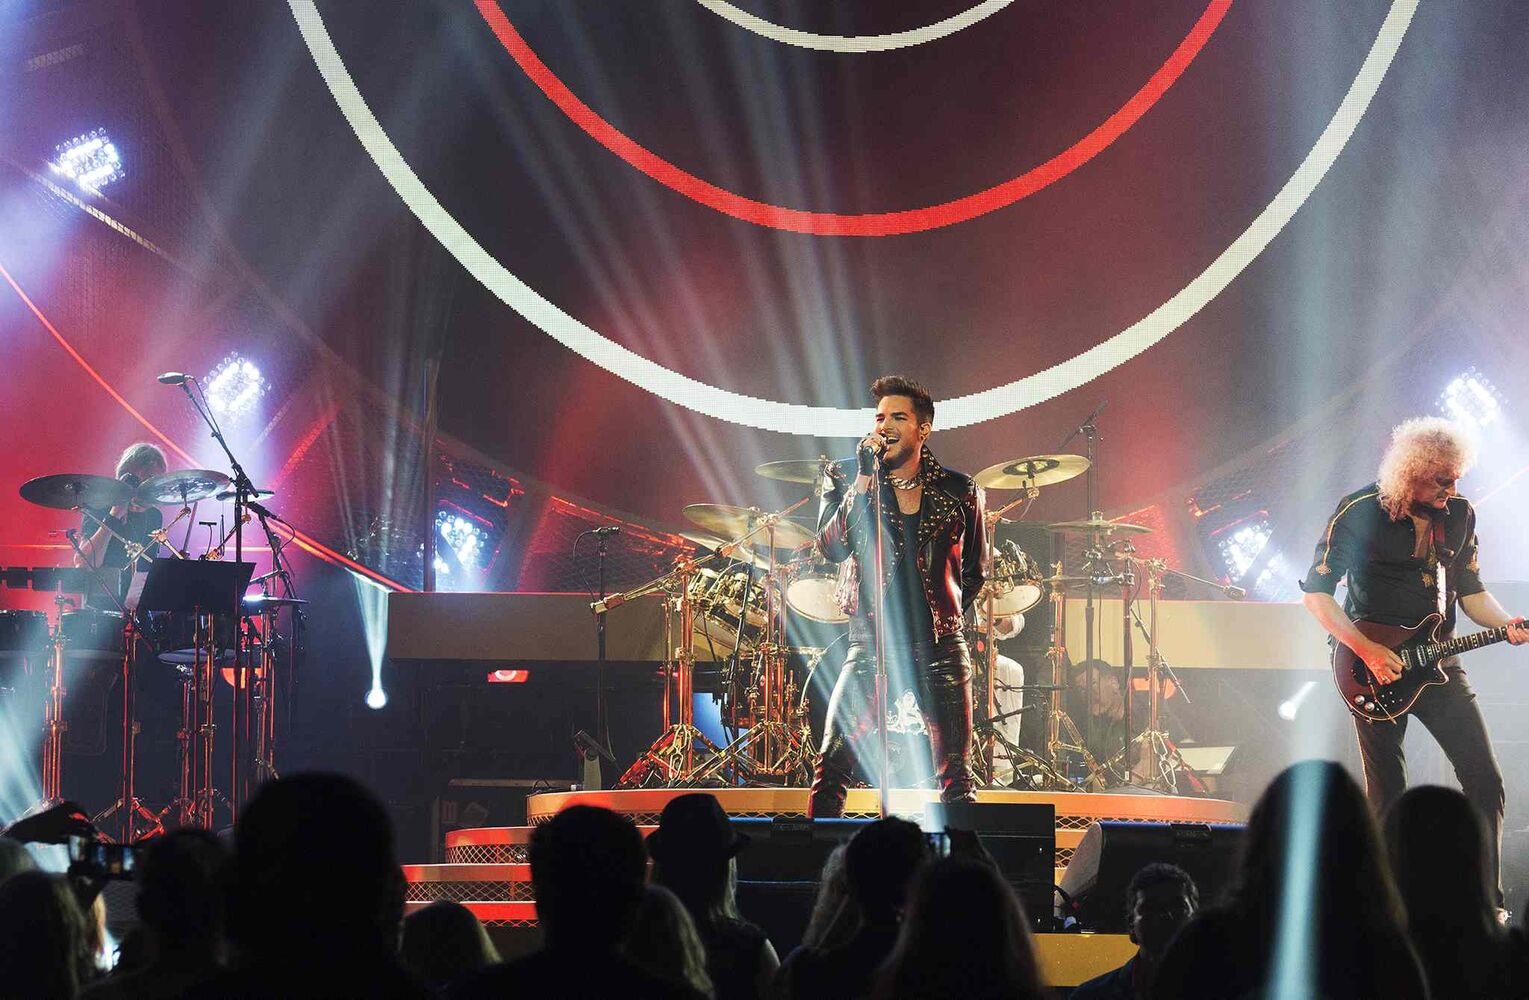 Queen and Adam Lambert perform at the MTS Centre on Saturday night.  (Sarah Taylor / Winnipeg Free Press)